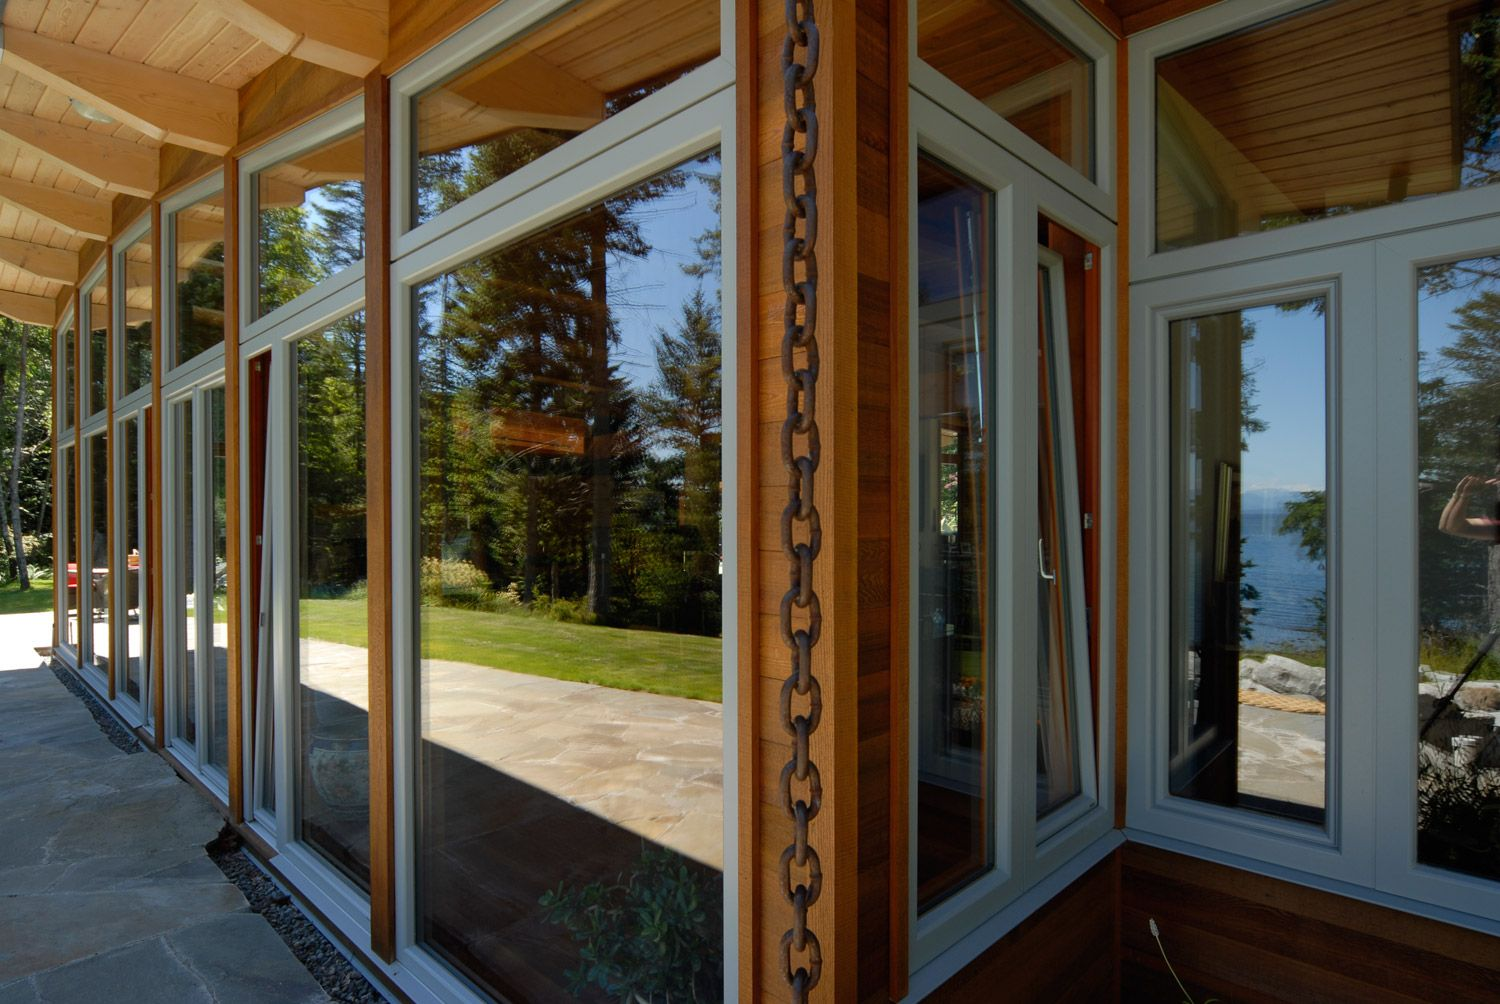 Gaulhofer Windows and Doors: Windows for a Lifetime | Gaulhofer ...